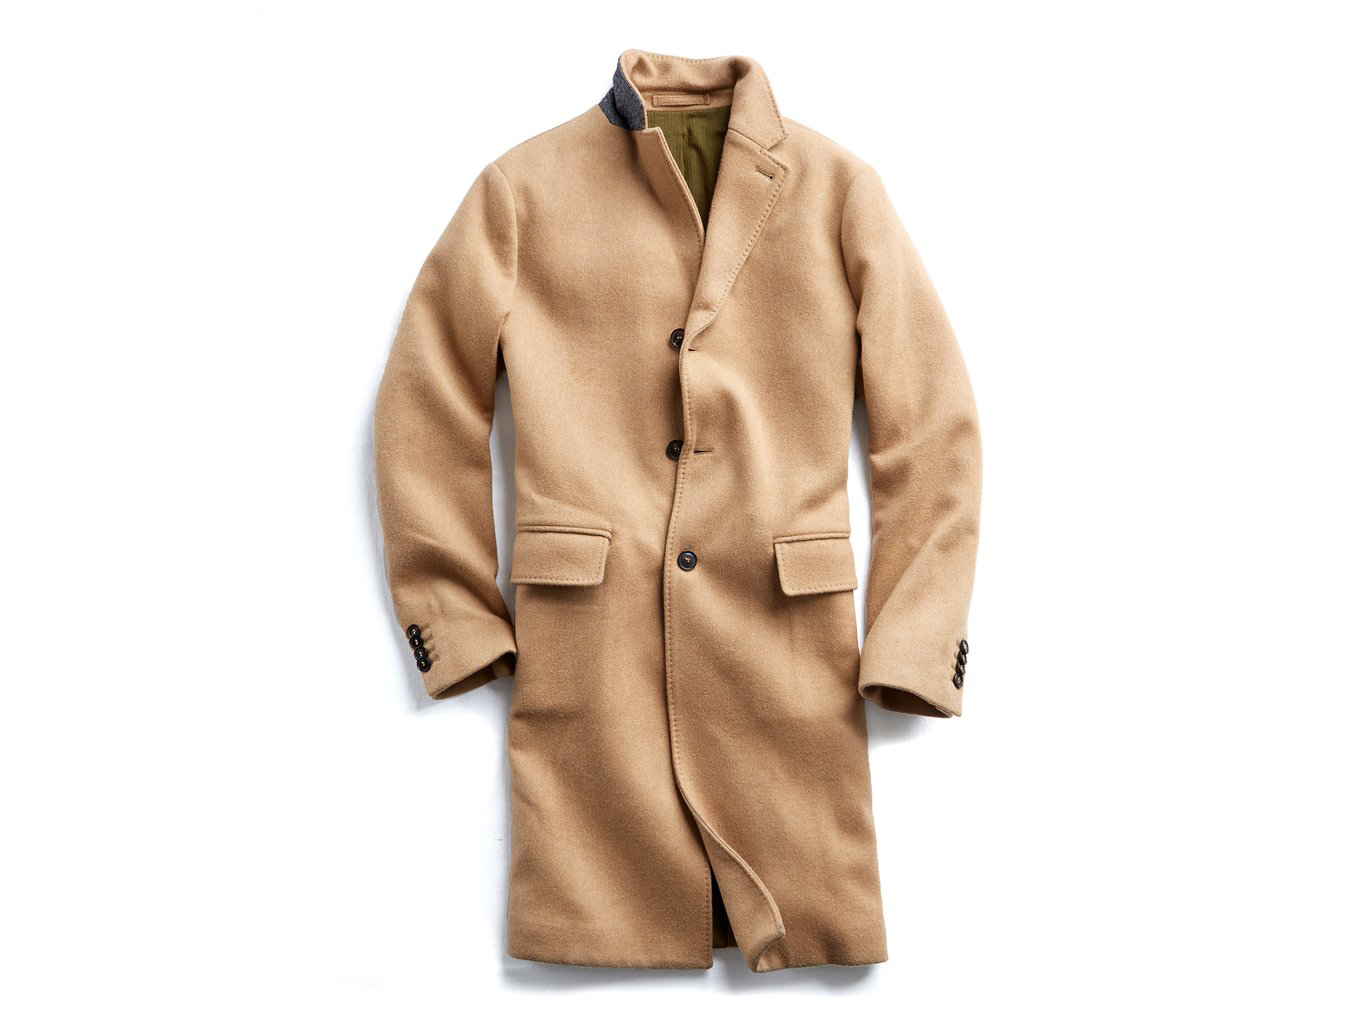 Todd Snyder ITALIAN WOOL CASHMERE CAMEL TOPCOAT